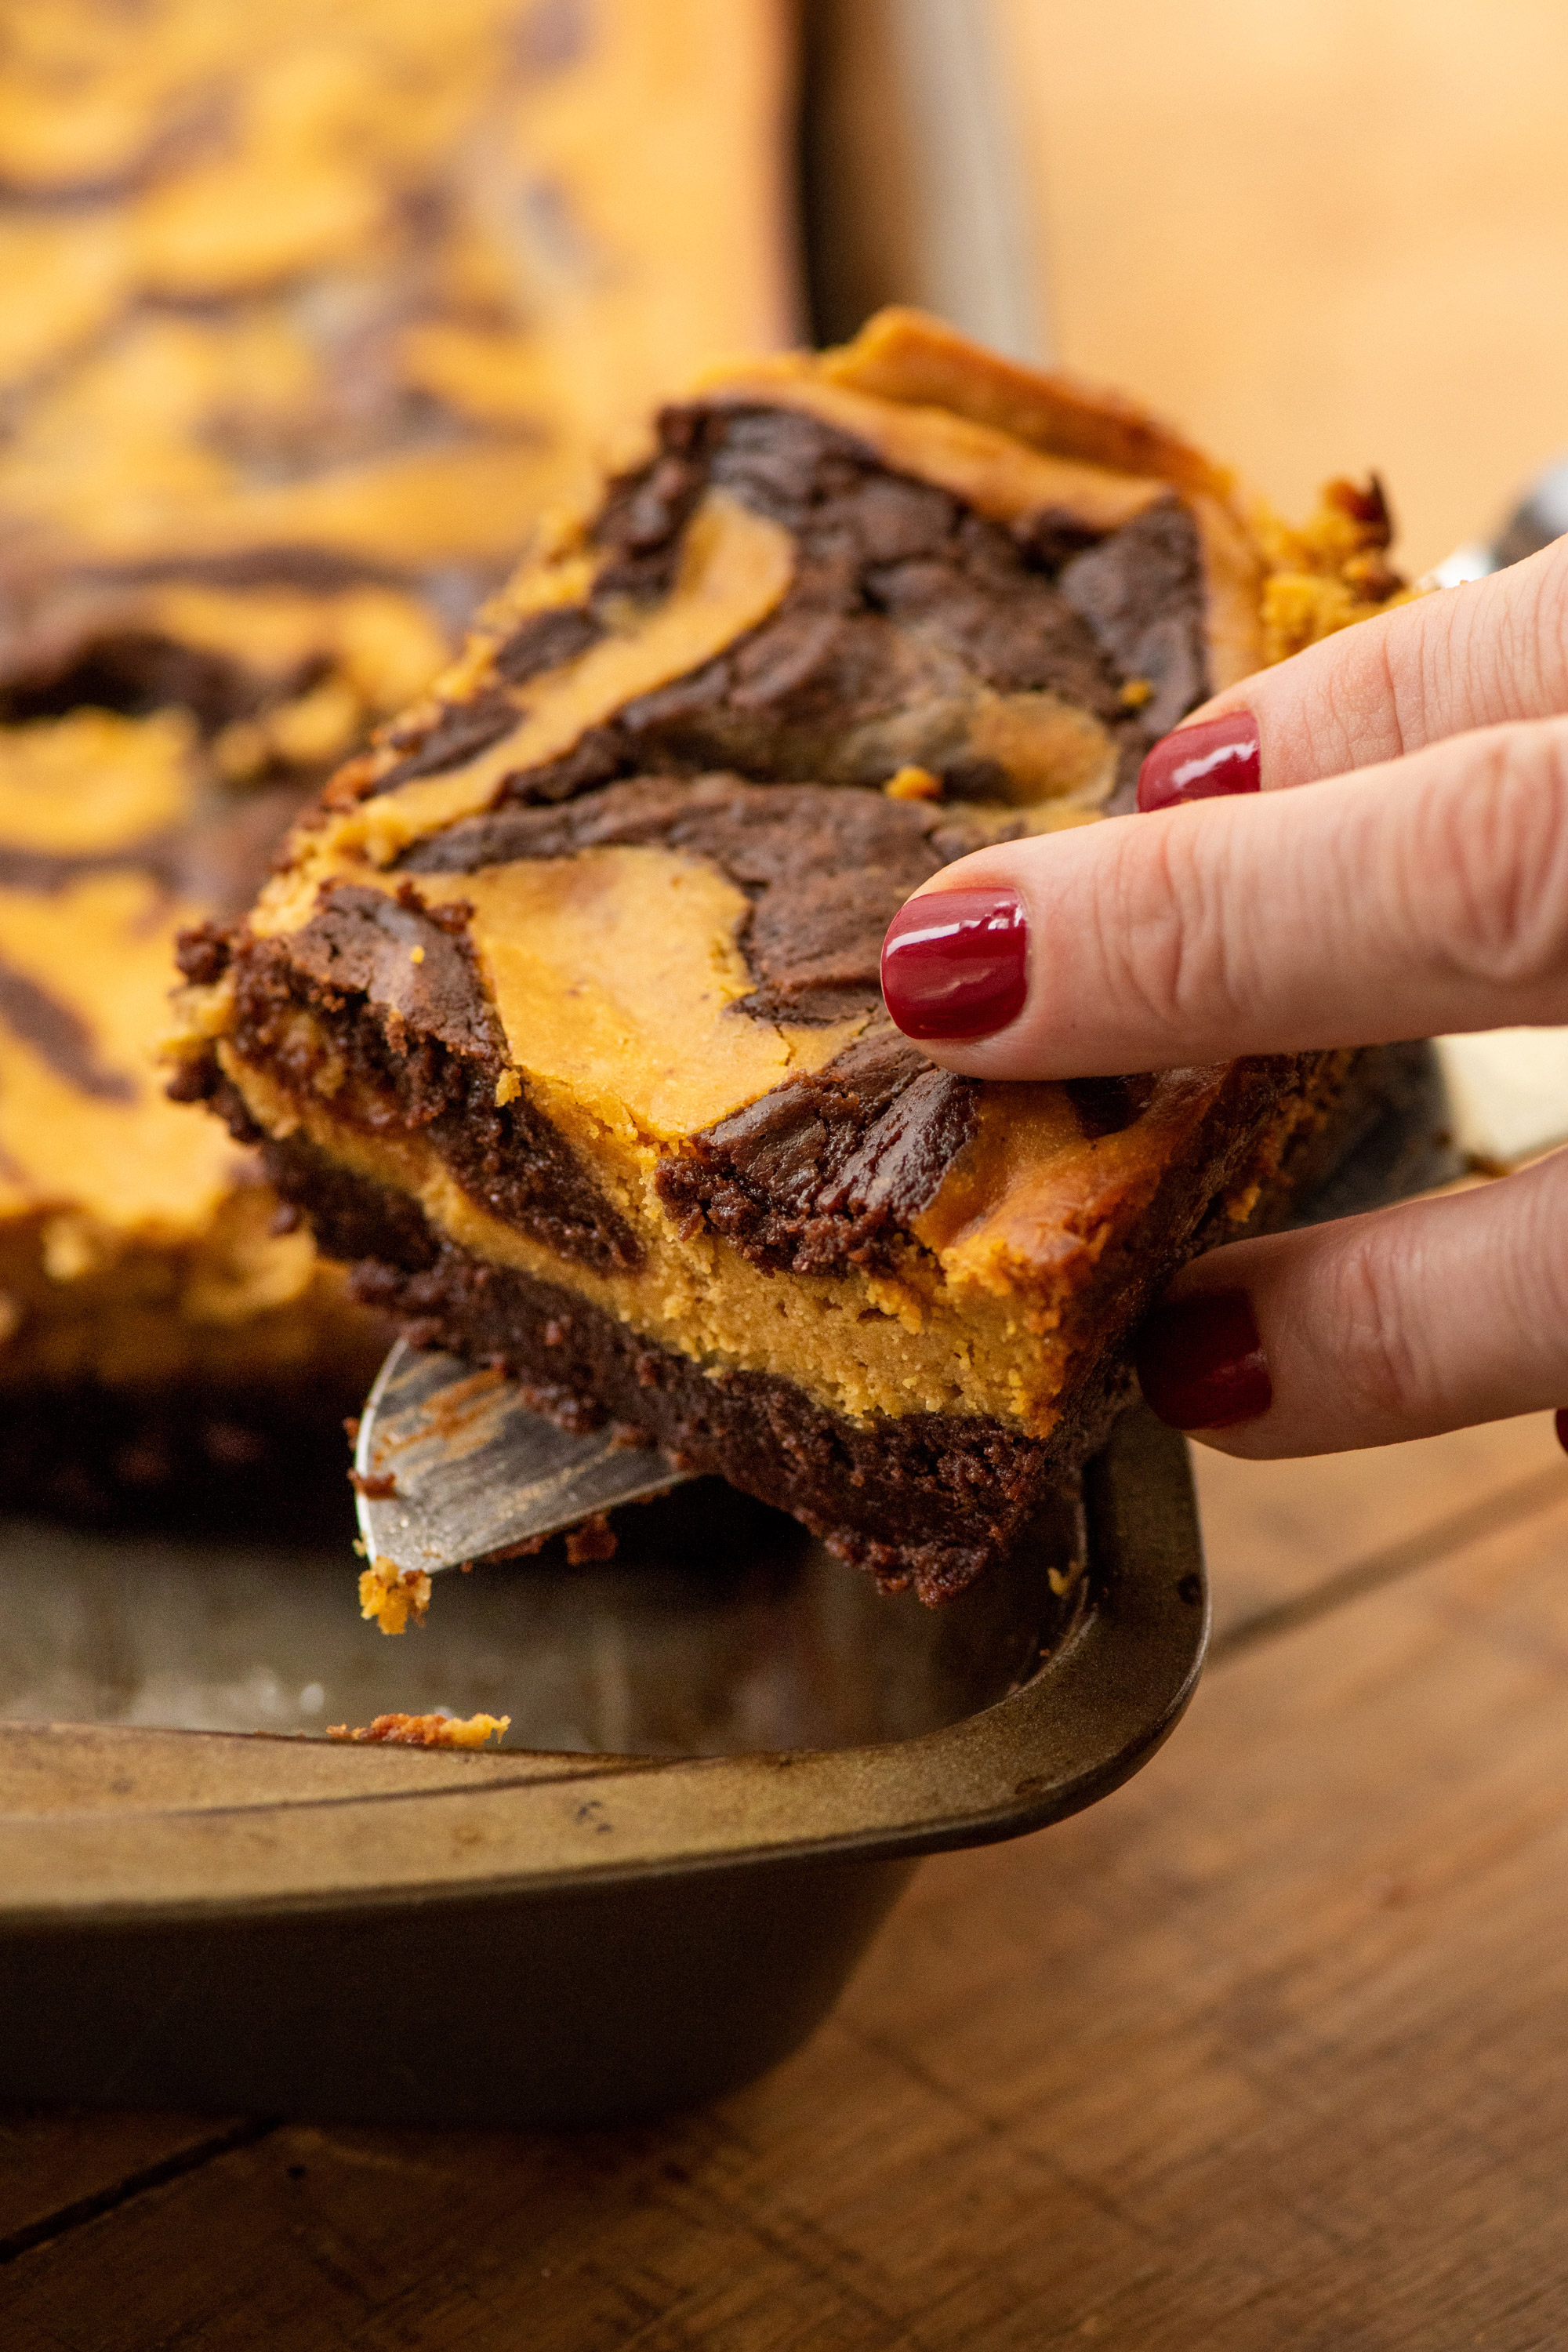 What to Do with Leftover Canned Pumpkin: Those post-Thanksgiving cans of pumpkin have all sorts of amazing uses, from pancakes to brownies to gingerbread! #pumpkin #cannedpumpkin